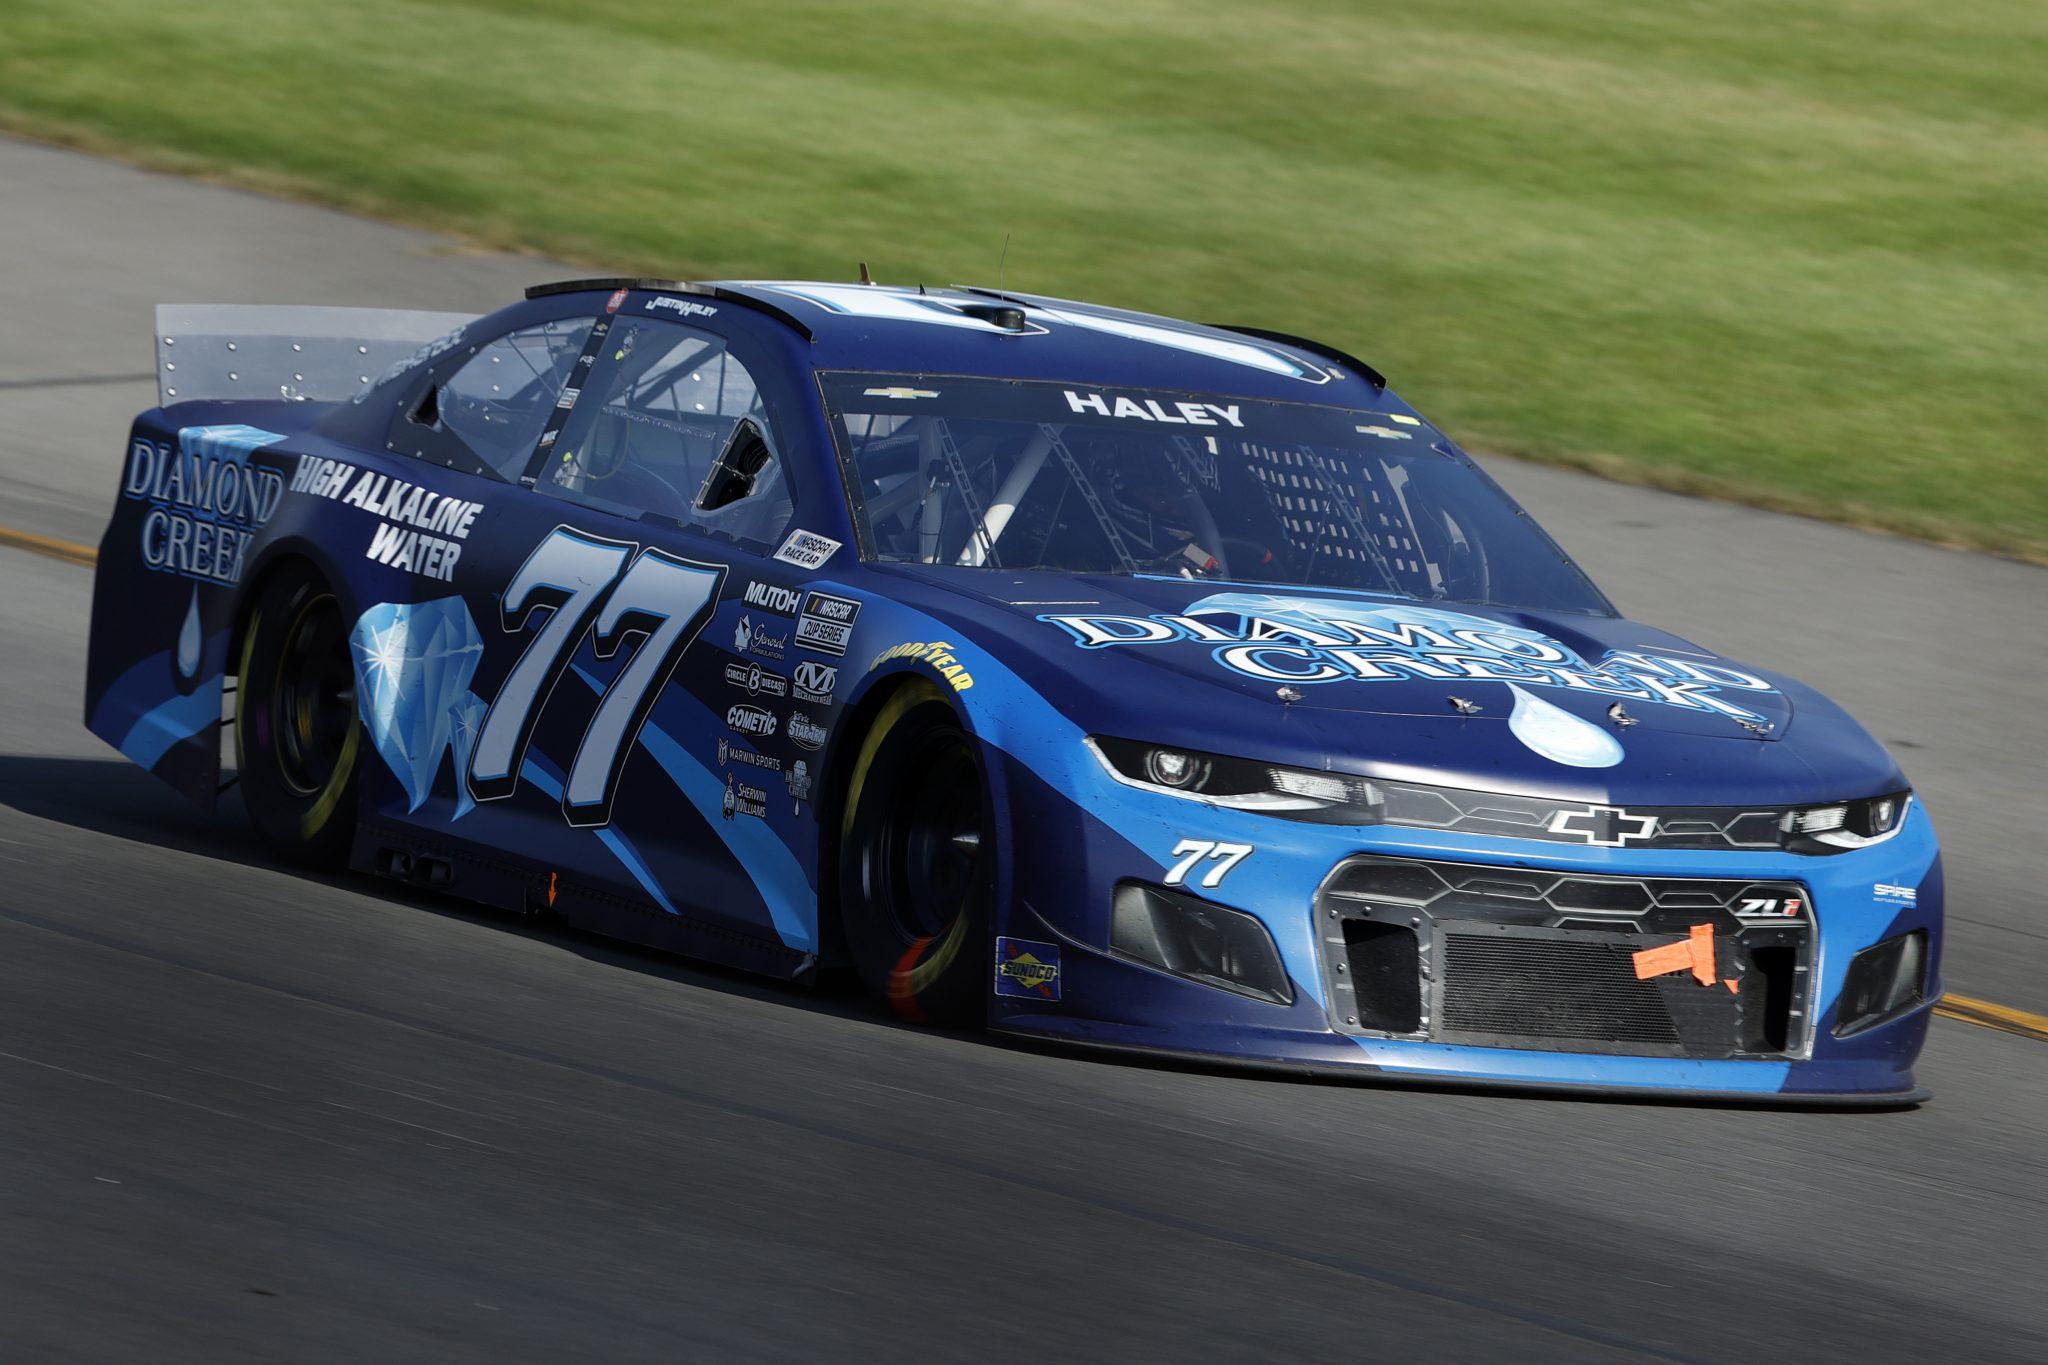 LONG POND, PENNSYLVANIA - JUNE 27: Justin Allgaier, driver of the #77 Diamond Creek Water Chevrolet, drives, replacing Justin Haley during the NASCAR Cup Series Explore the Pocono Mountains 350 at Pocono Raceway on June 27, 2021 in Long Pond, Pennsylvania. (Photo by Tim Nwachukwu/Getty Images) | Getty Images